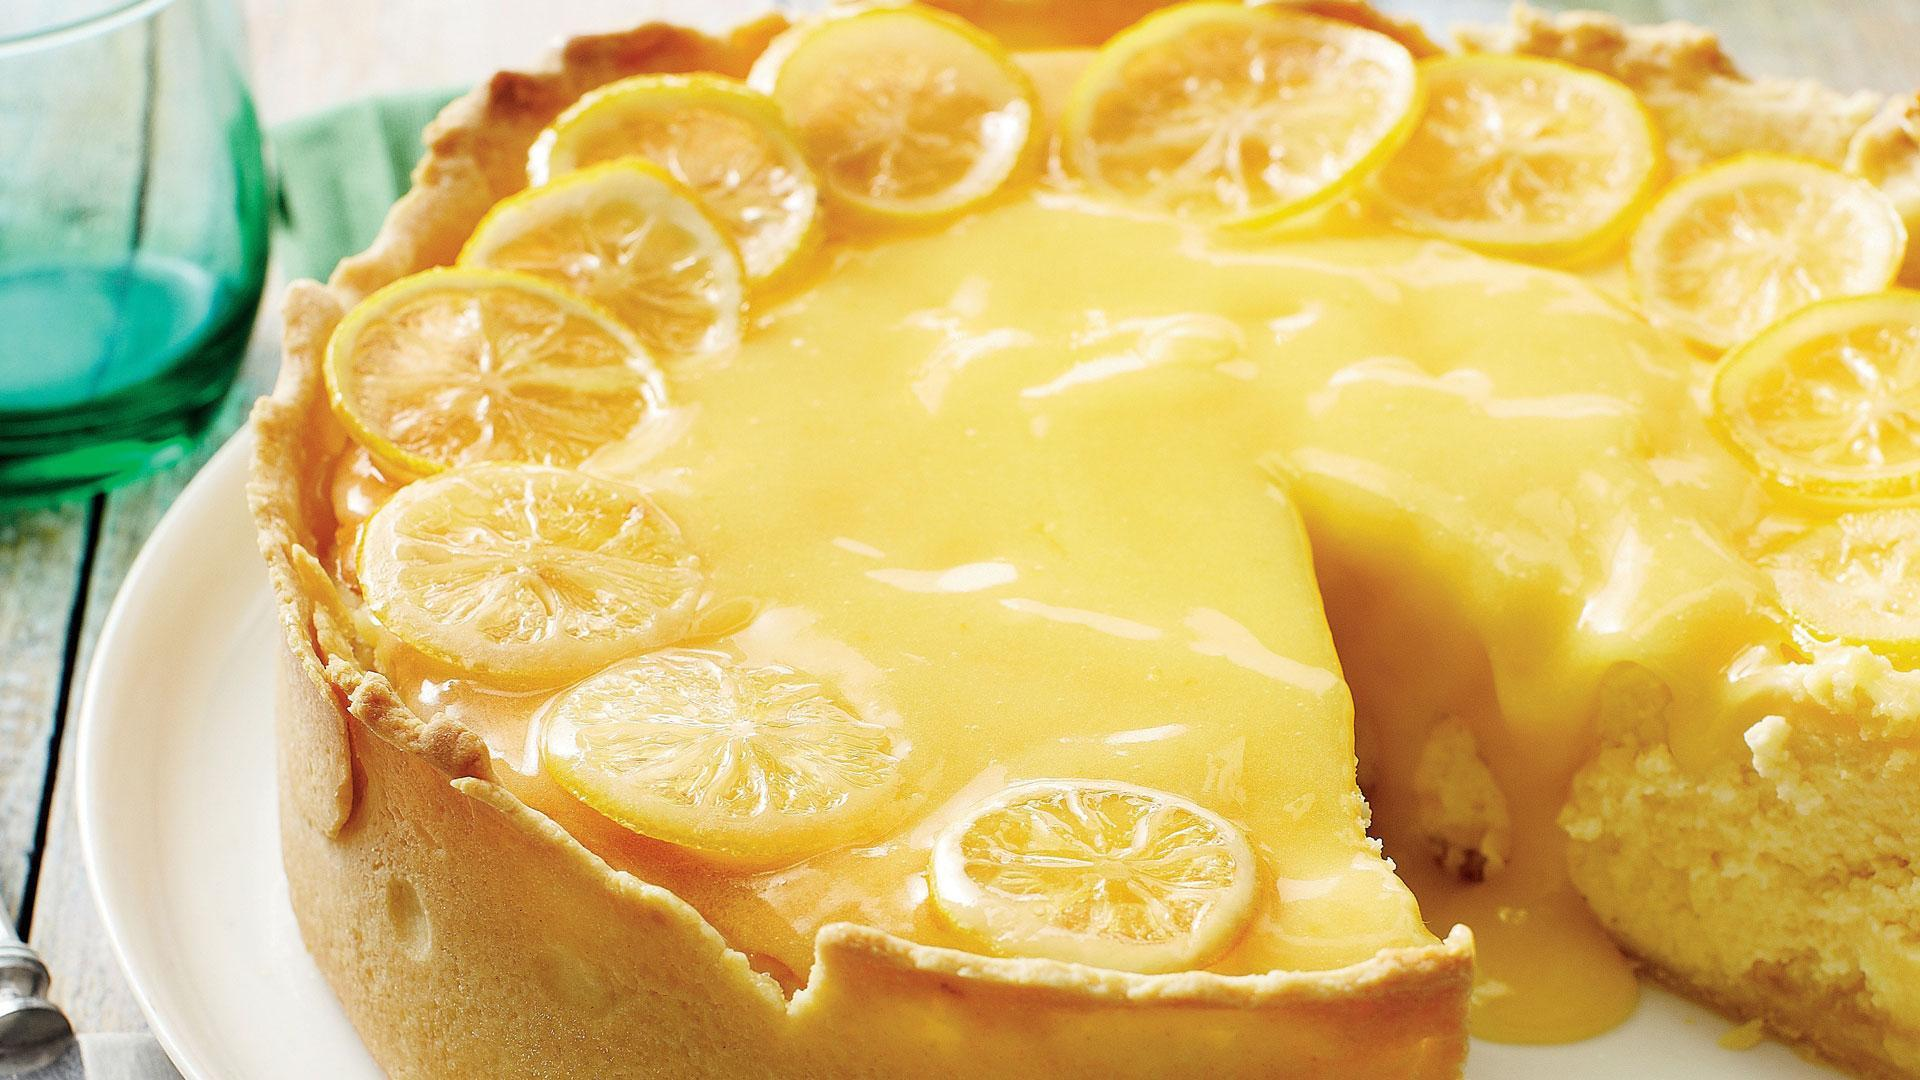 Guests Will Swoon Over This Lemon Bar Cheesecake